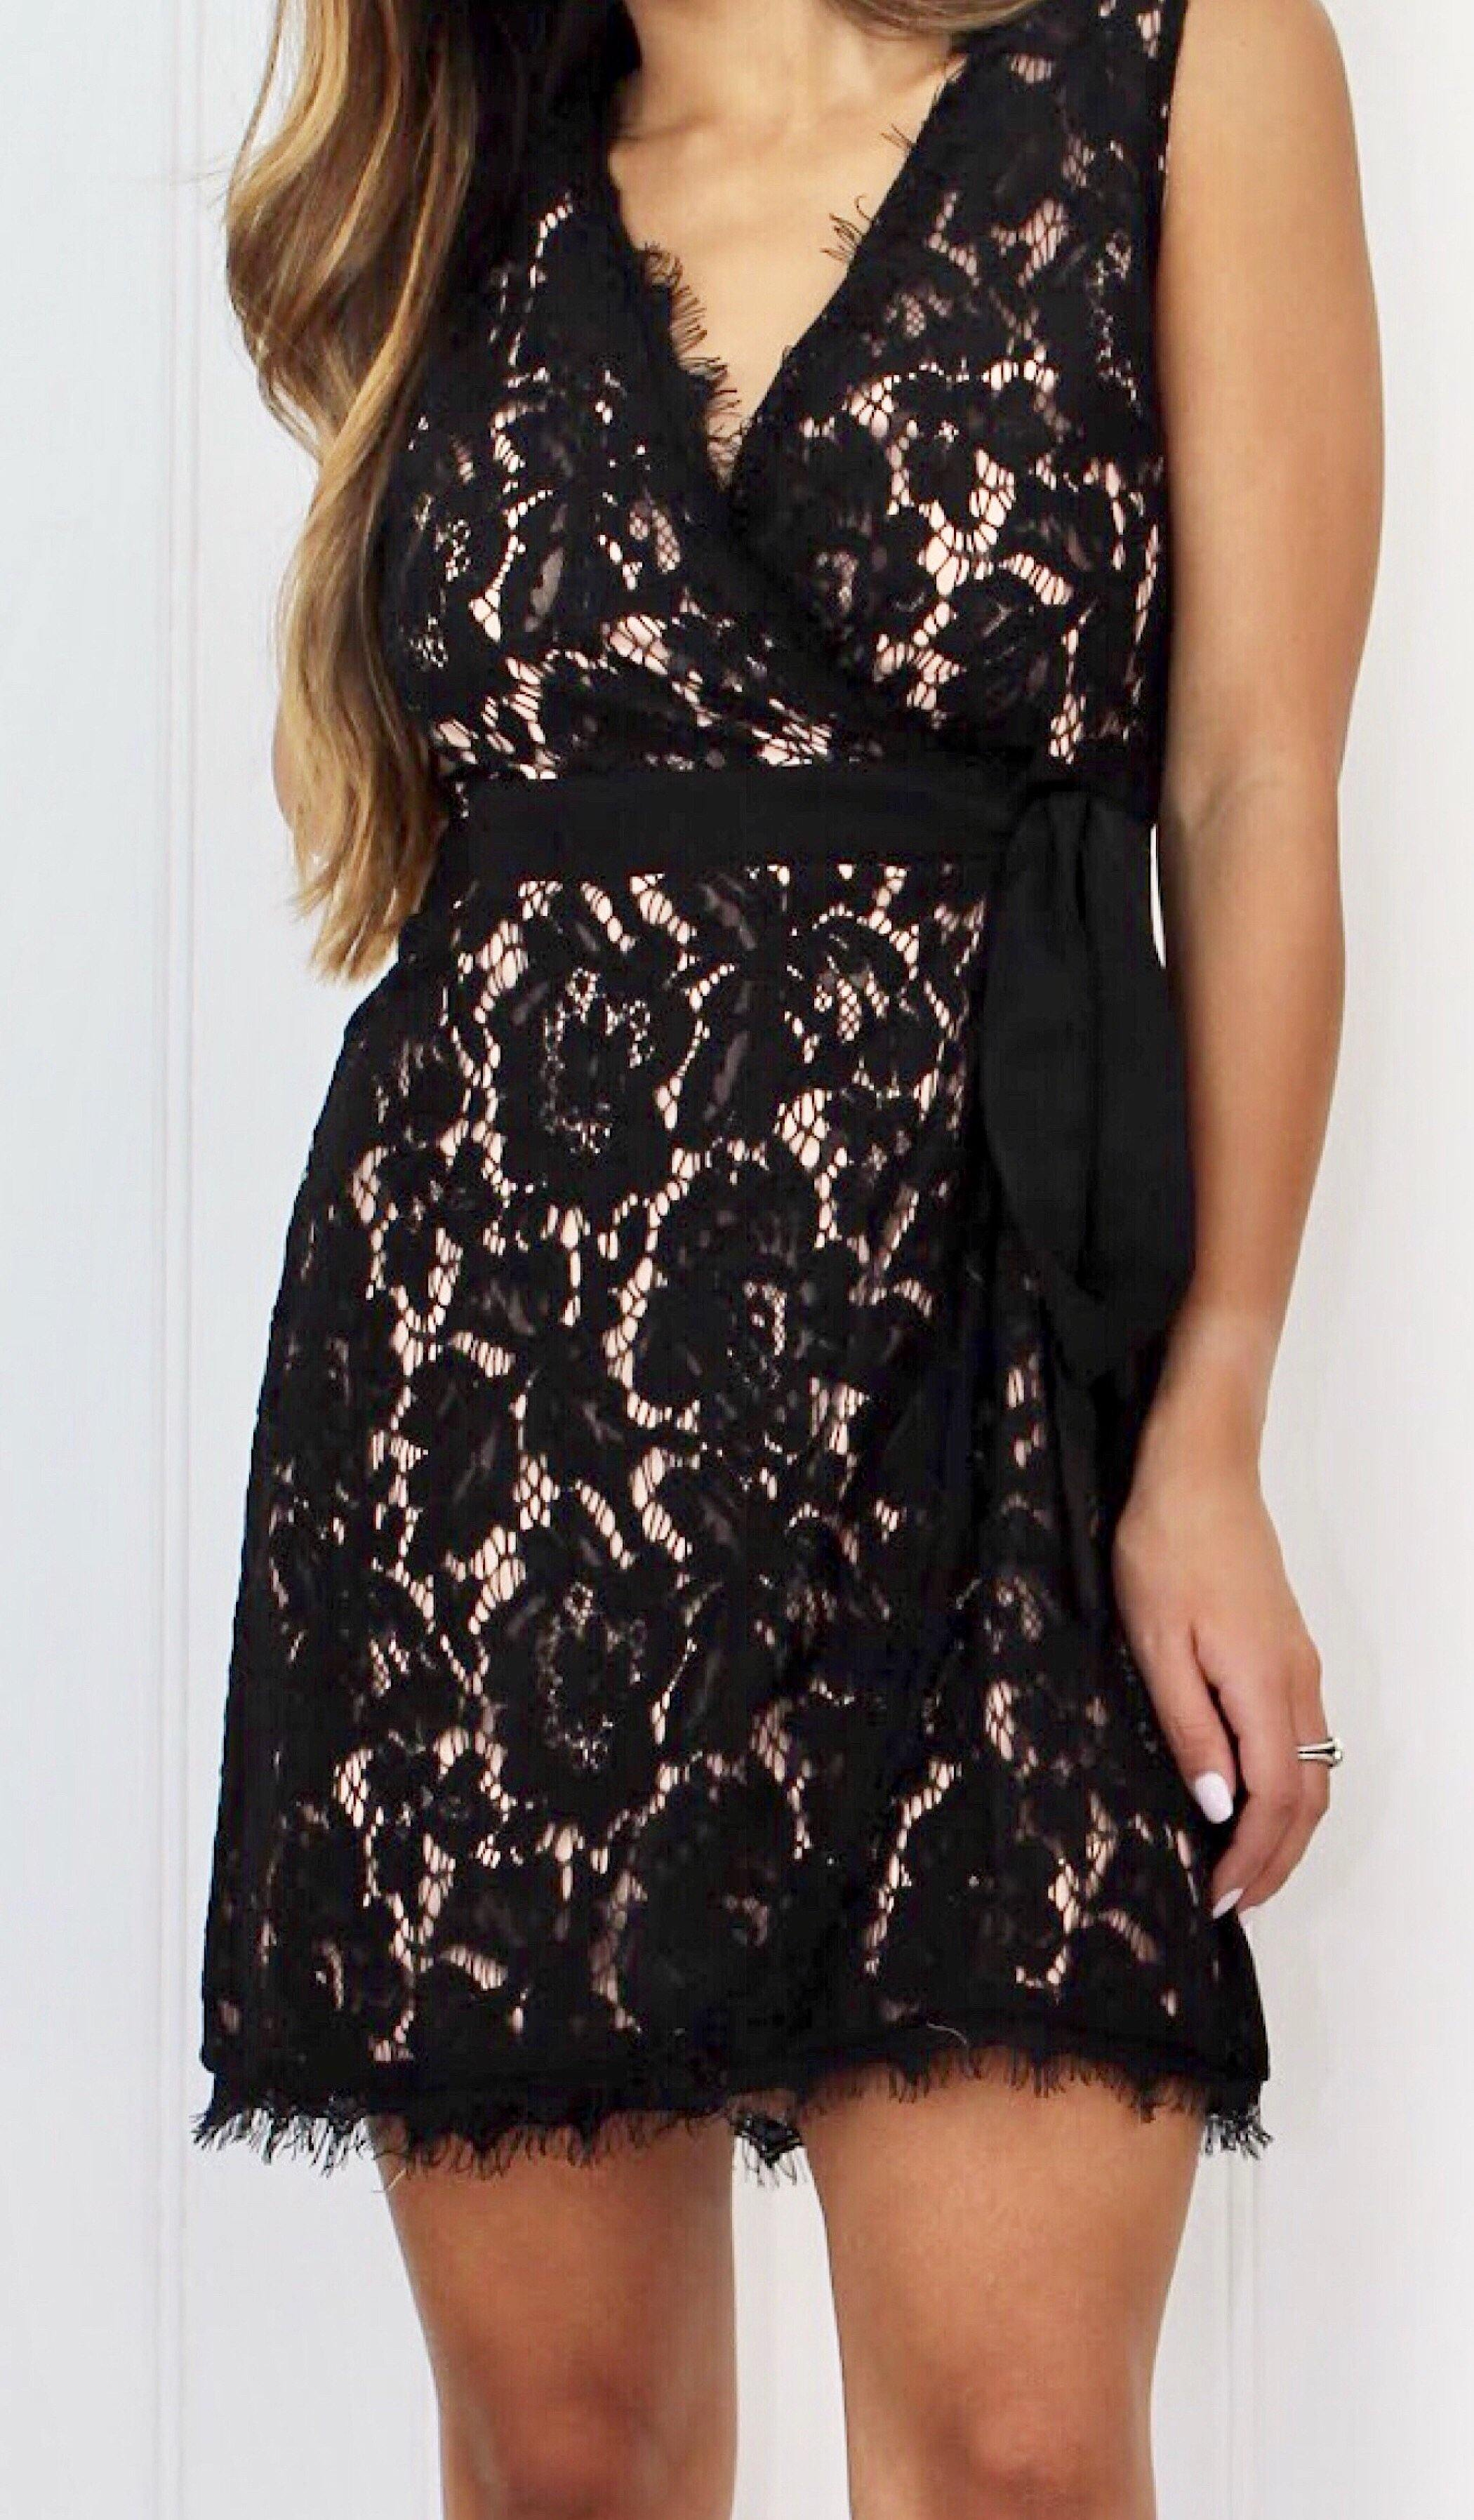 HOPE LACE DRESS - elbie boutique, LLC